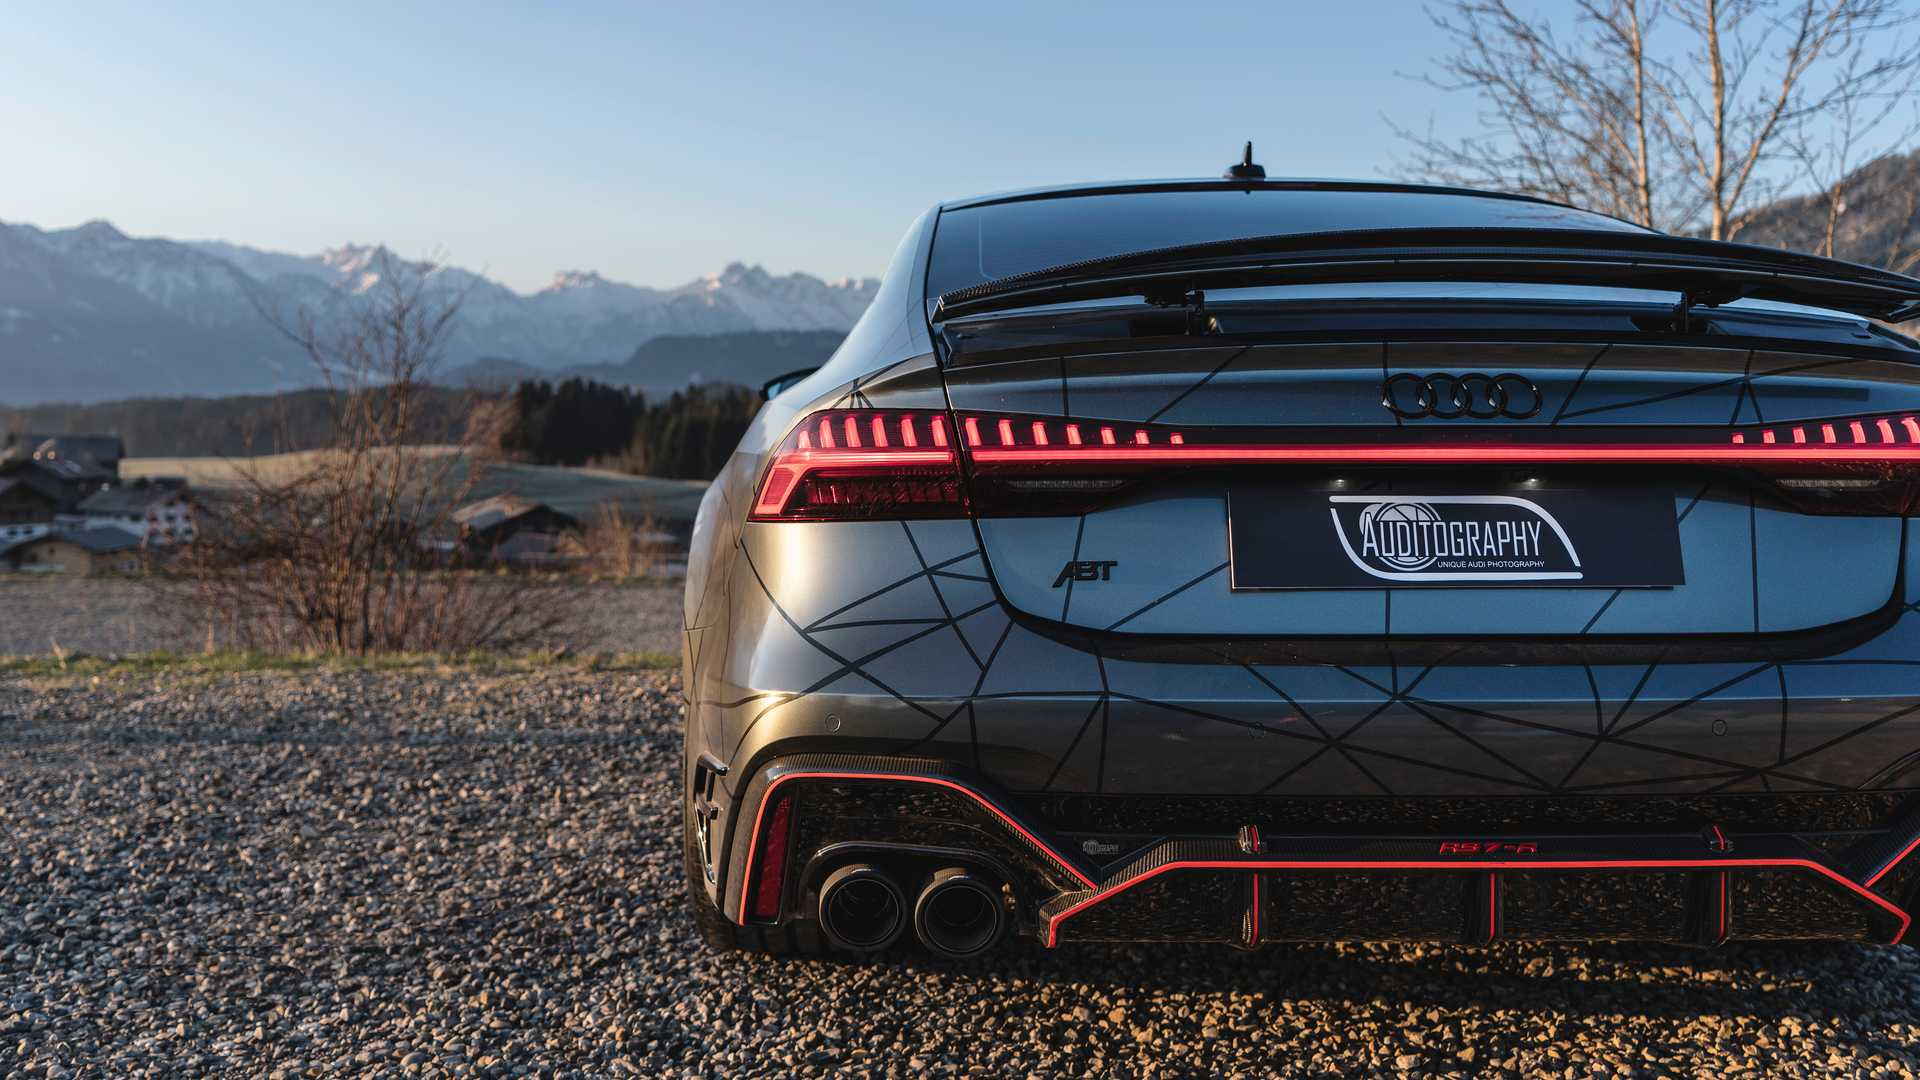 ABT_RS7-R_Auditography_0012